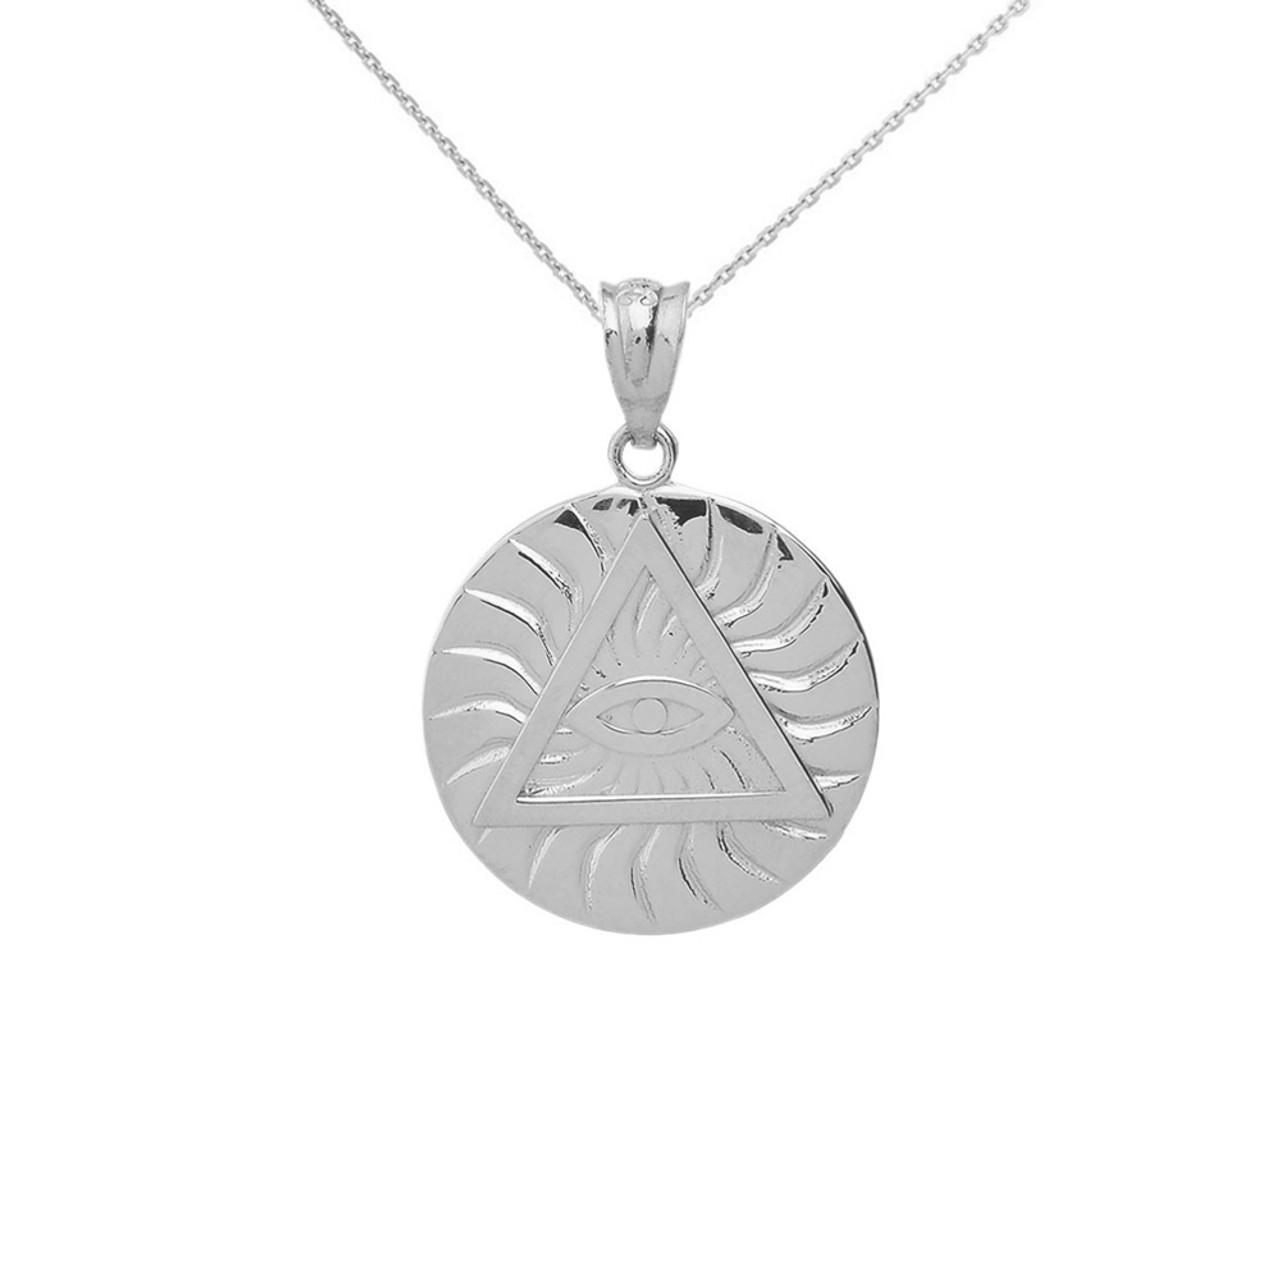 Solid white gold illuminati all seeing eye of providence circle solid white gold illuminati all seeing eye of providence circle pendant necklace mozeypictures Images